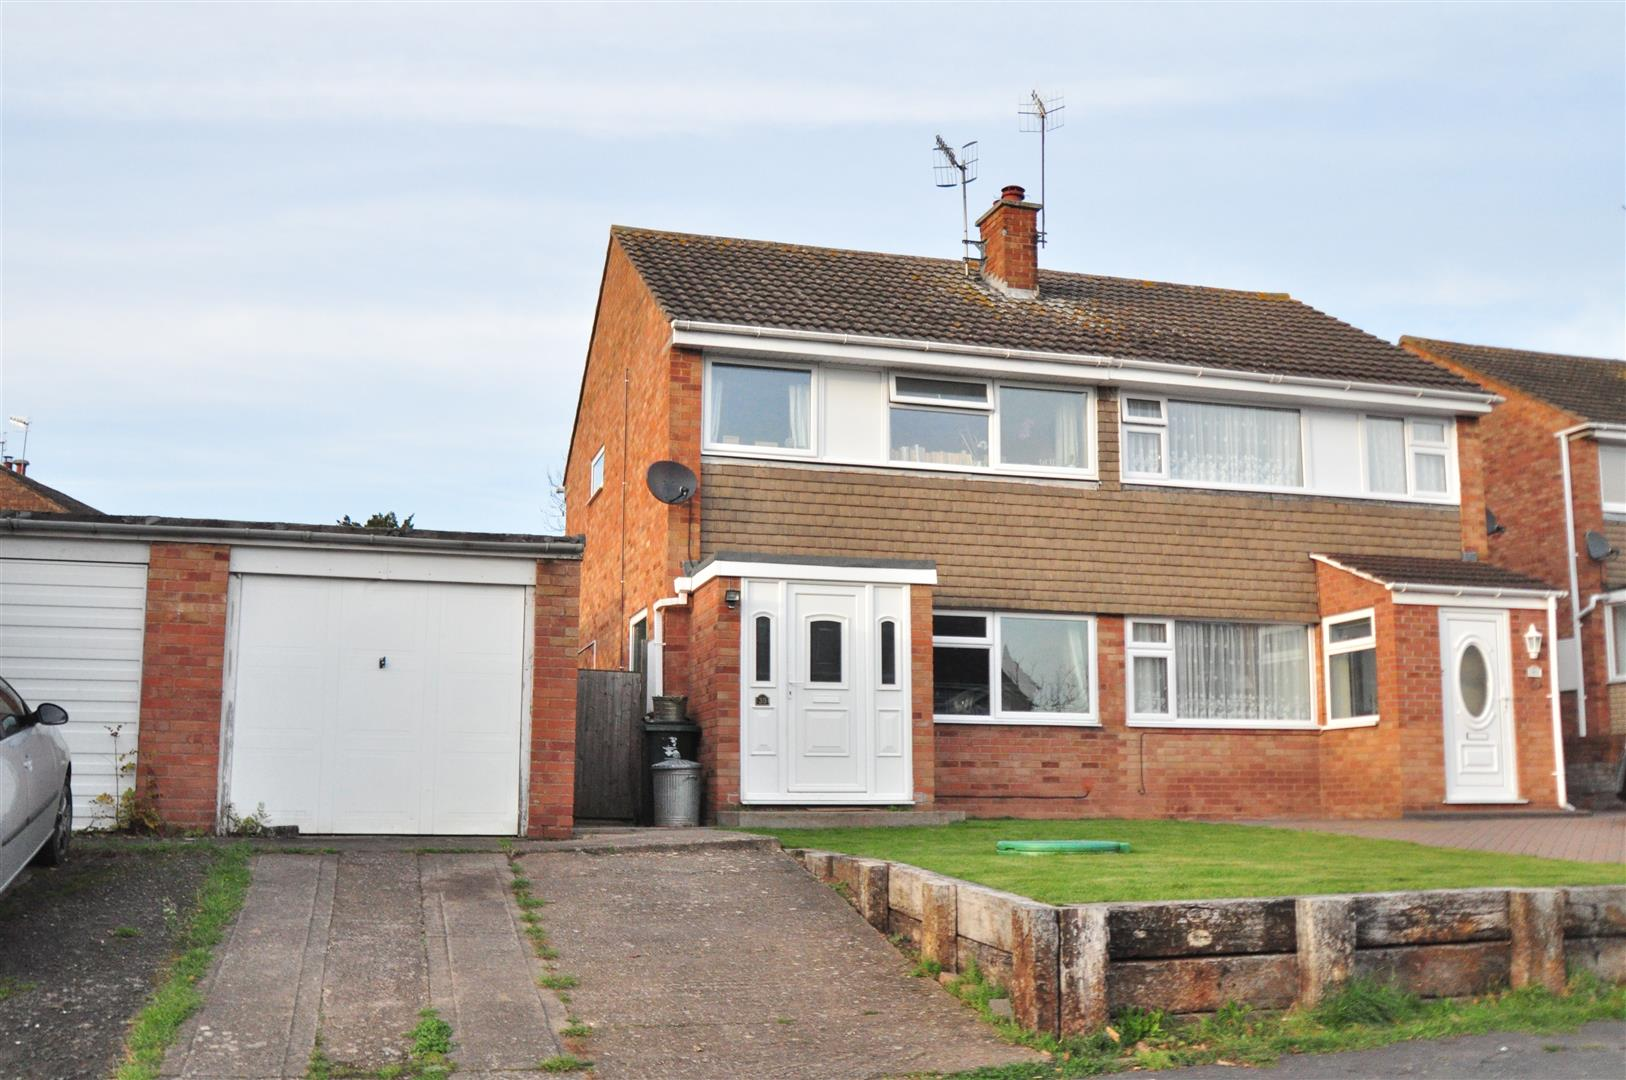 3 Bedrooms Semi Detached House for sale in Orchard Way, Bransford, Worcester